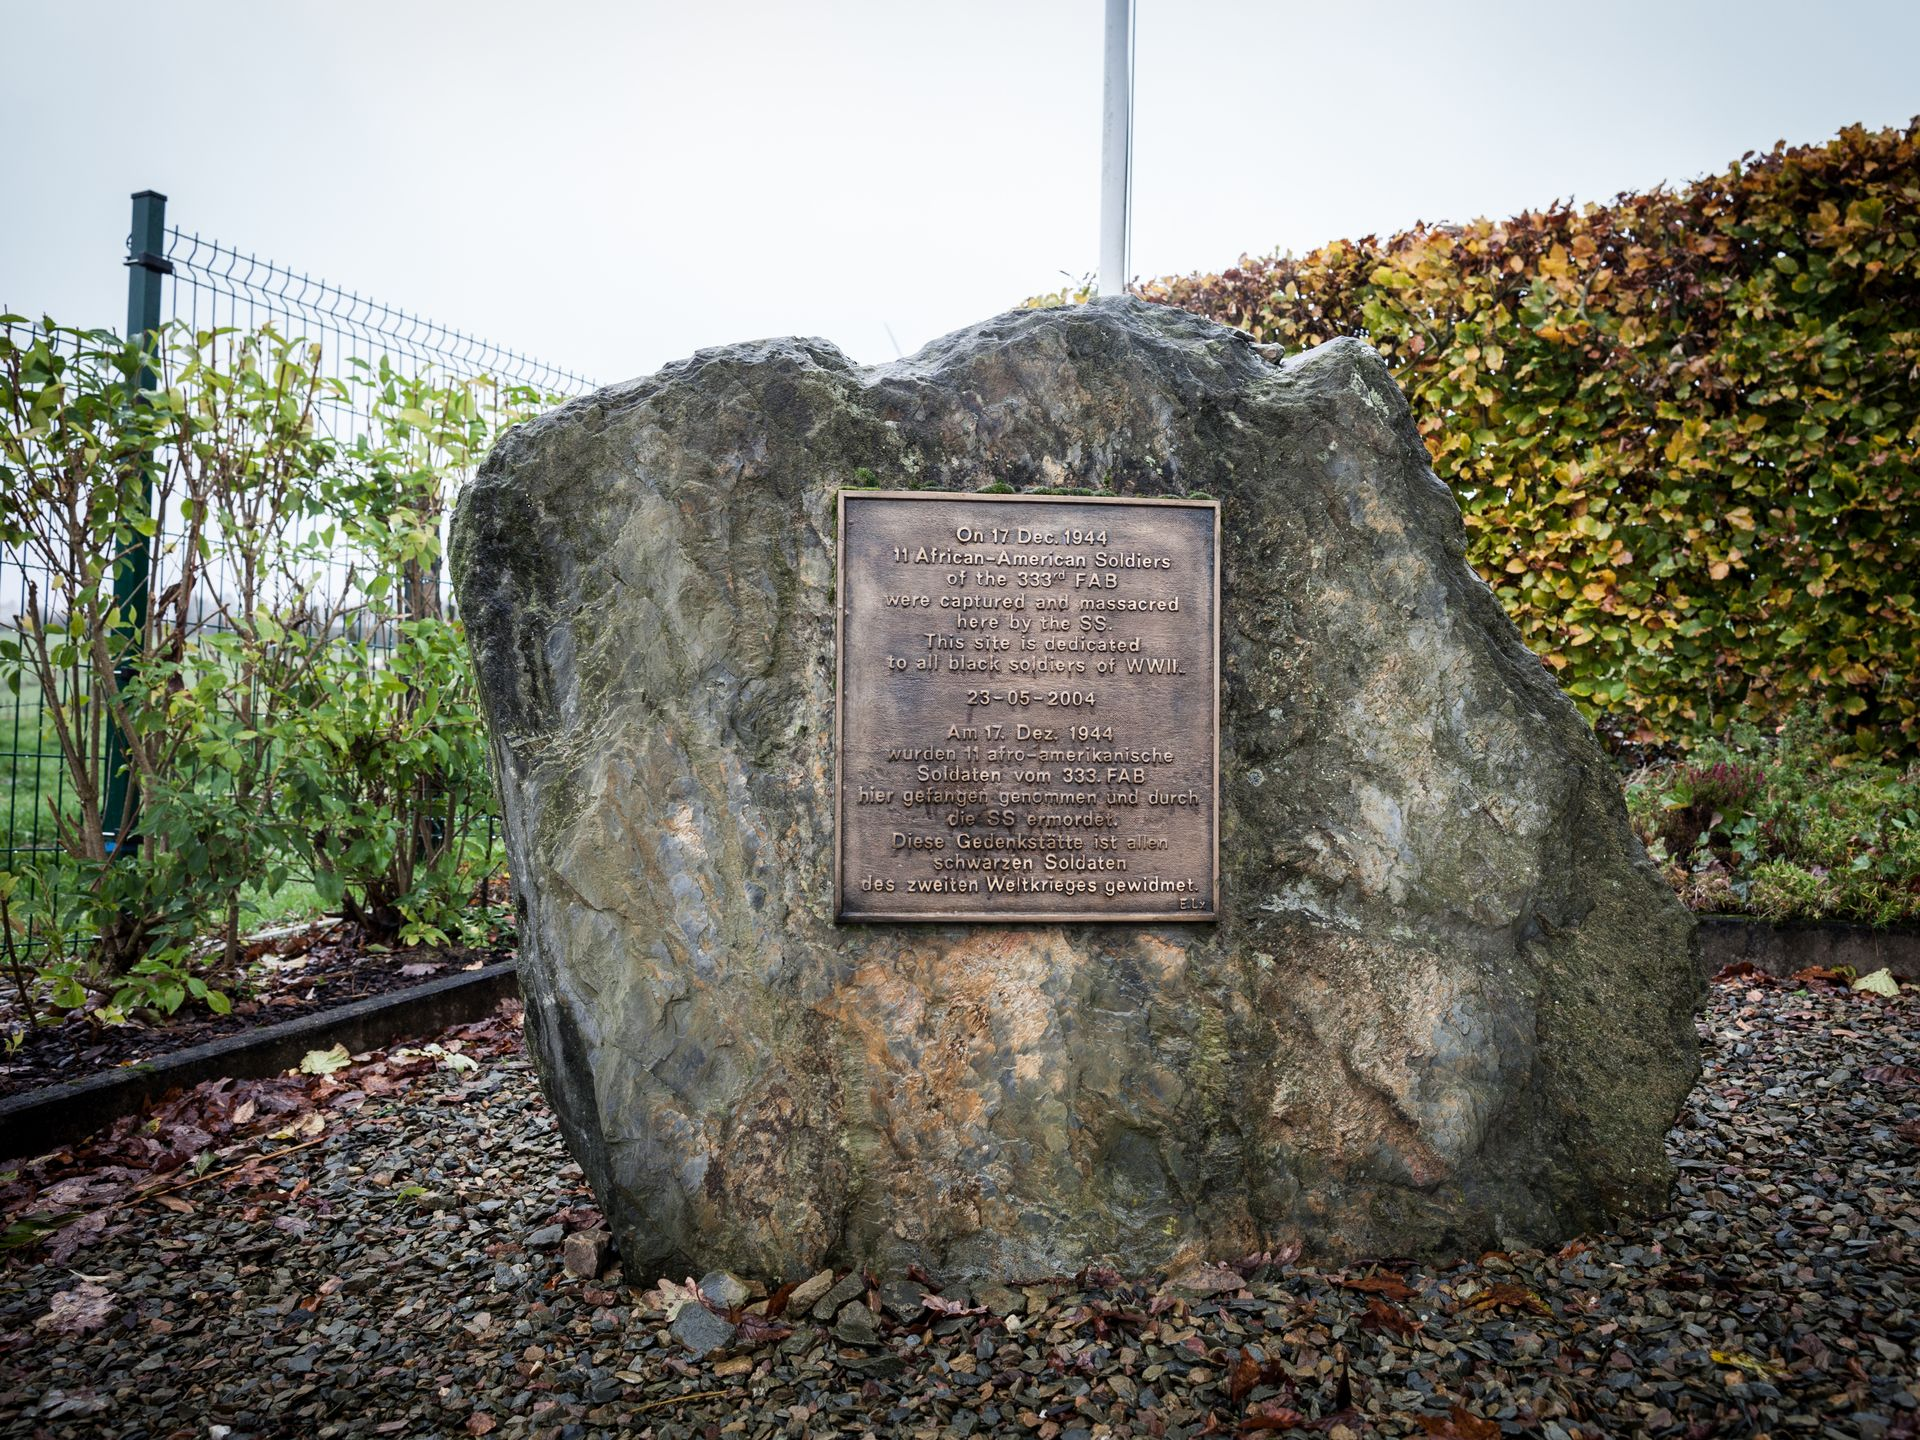 """The inscription reads, """"On 17 Dec 1944, 11 African-American Soldiers of the 333rd FAB were captured and massacred here by the SS. This site is dedicated to all black soldiers of WWII"""""""